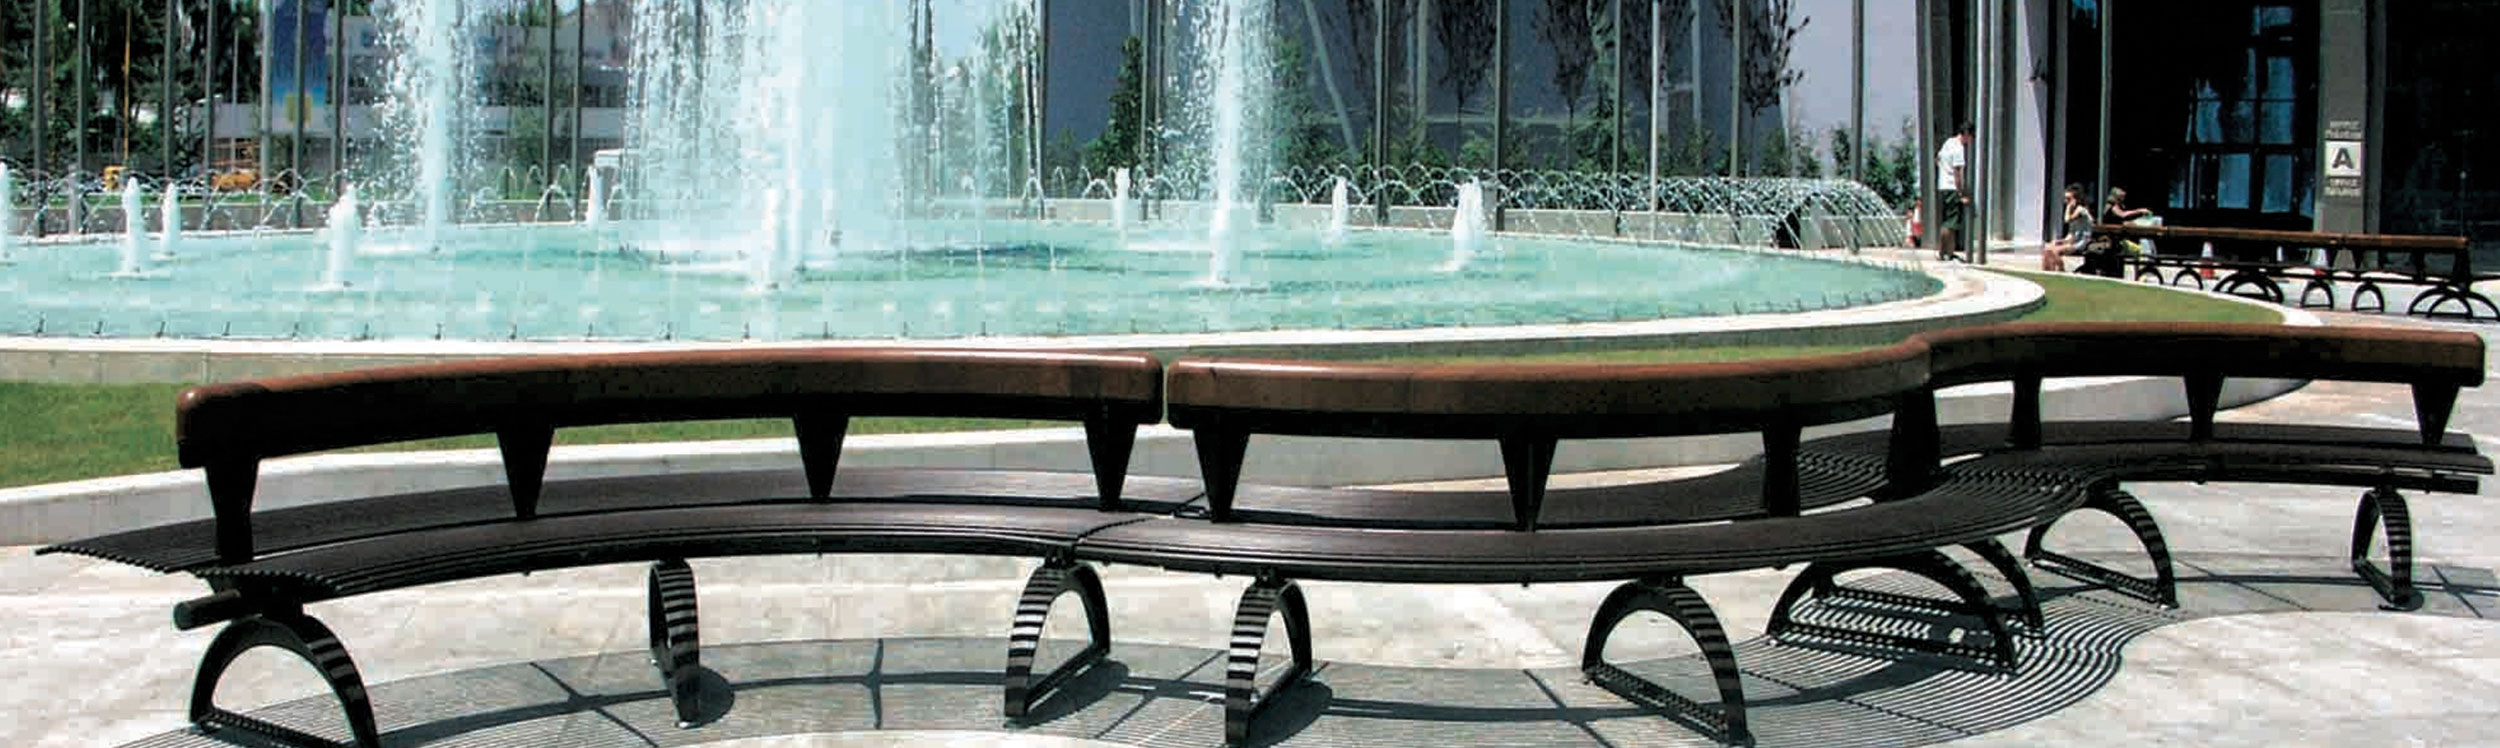 Park and site furnishings with seating for public spaces